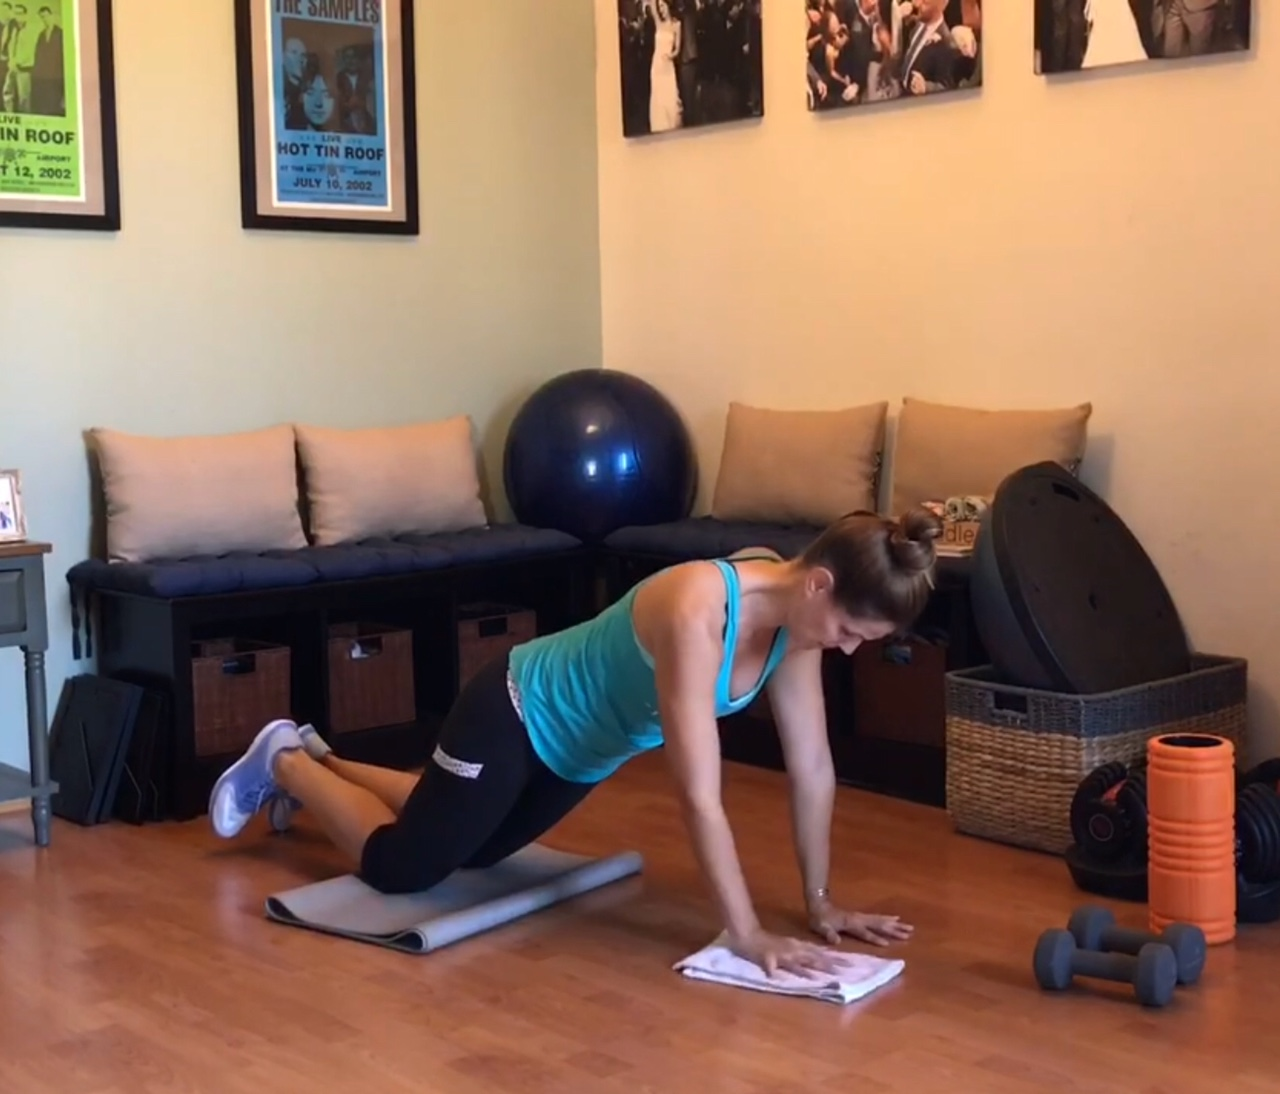 5 months pregnant getting ready to do a towel slide out pushup